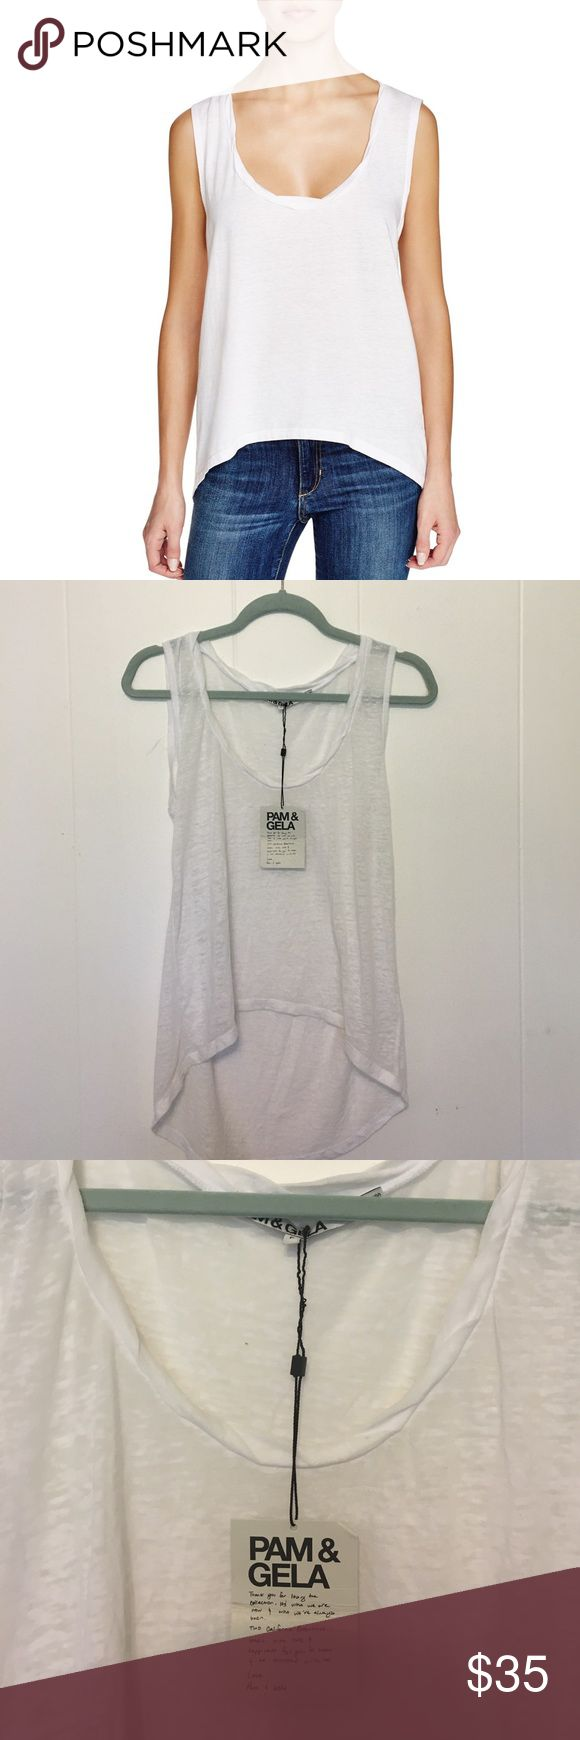 Pam & Gela tank Pam & Gela hi-lo sleeveless tee. Small hole from tag at the back neck. New with tags pam & gela Tops Tank Tops